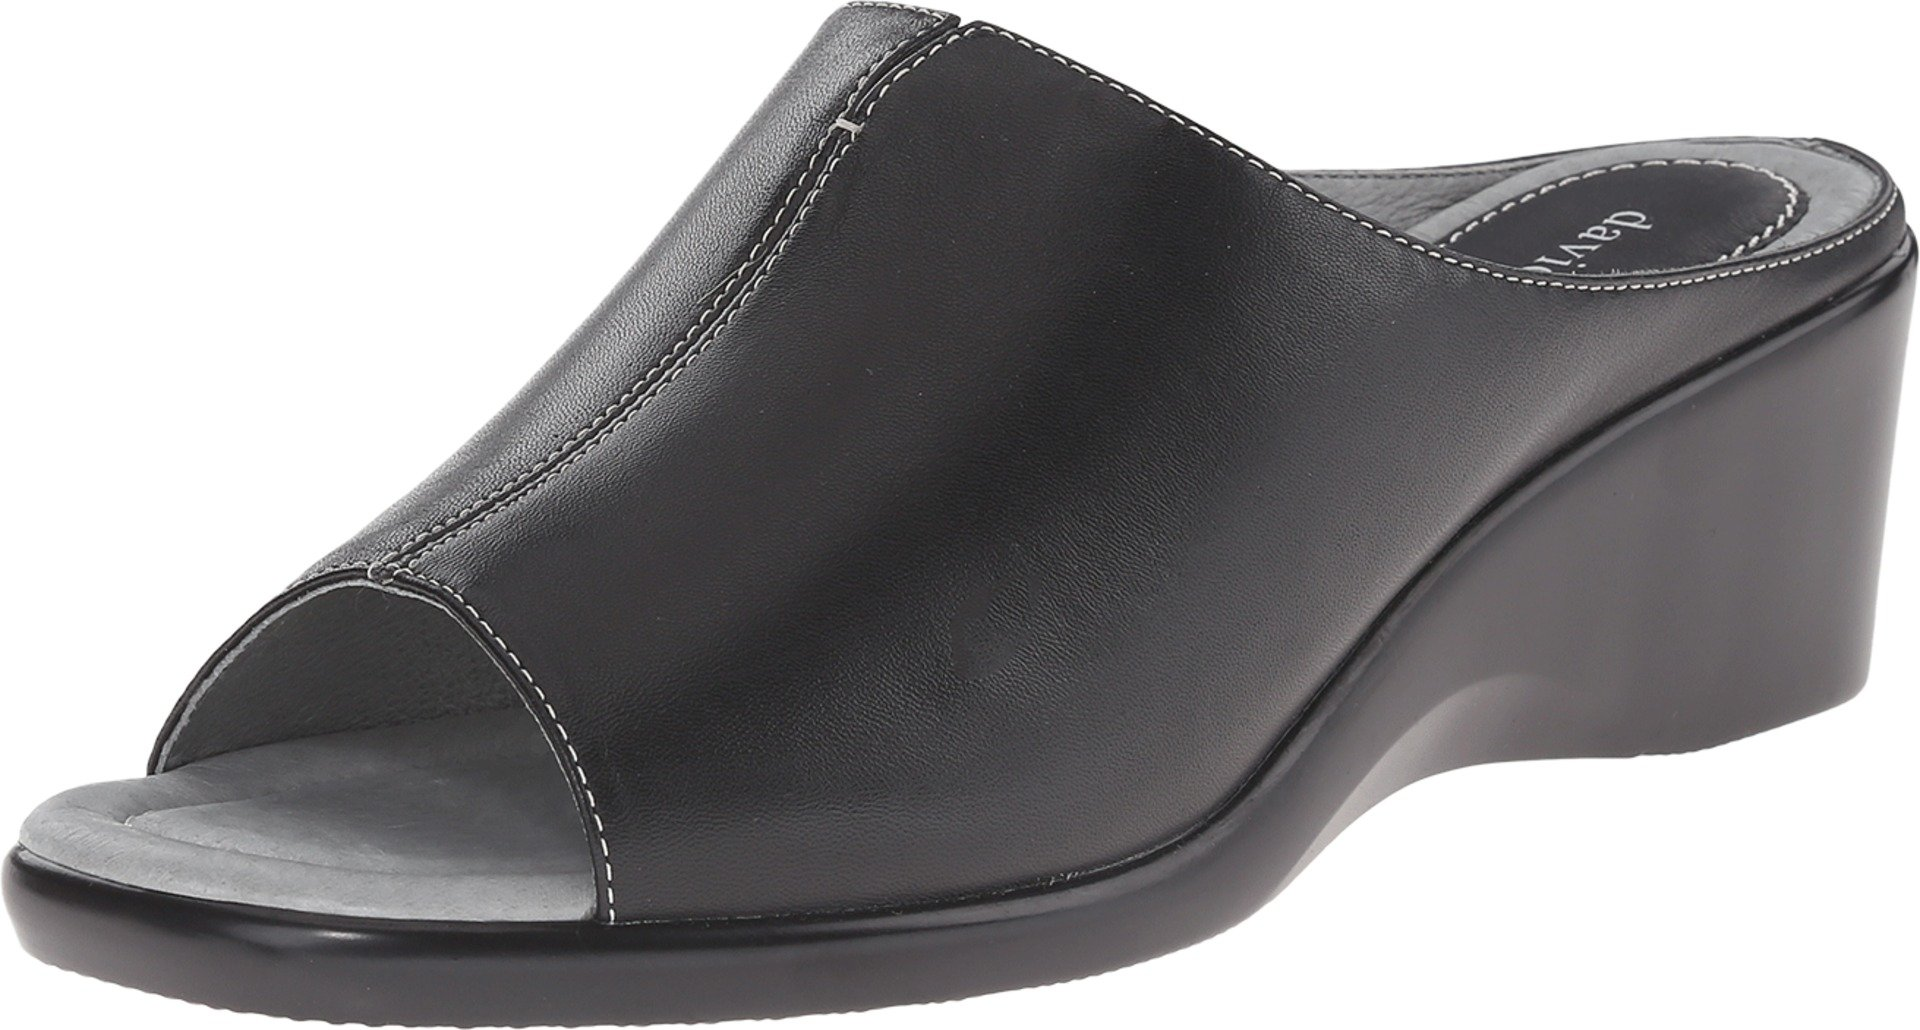 David Tate Women's Gloria Slide Sandal,Black Lamb,10 M US